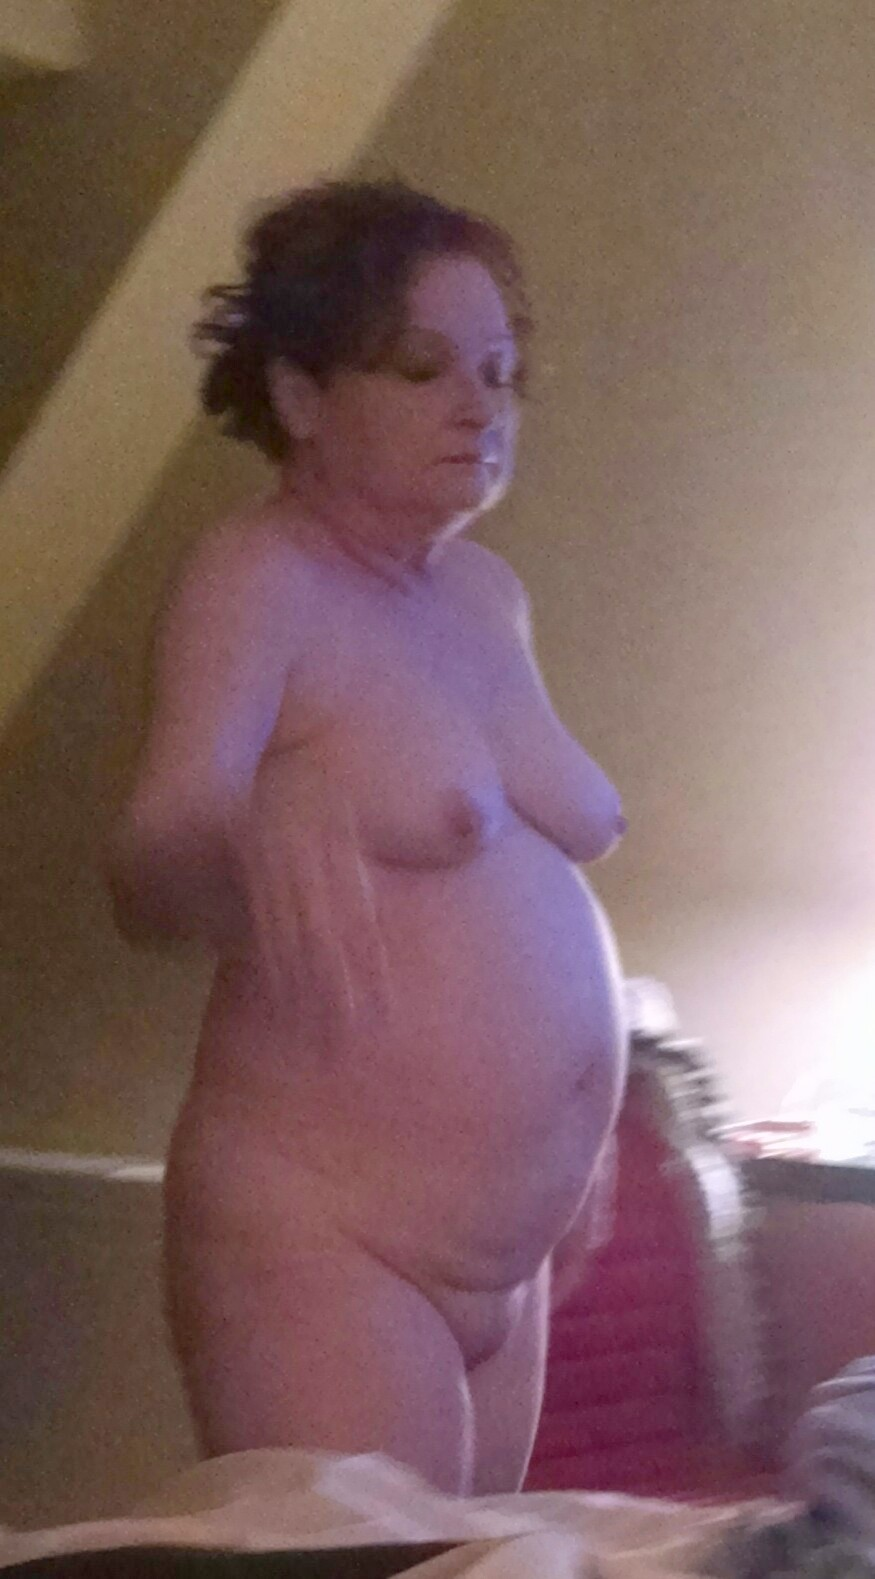 chubby wife naked in hotel-voyeur